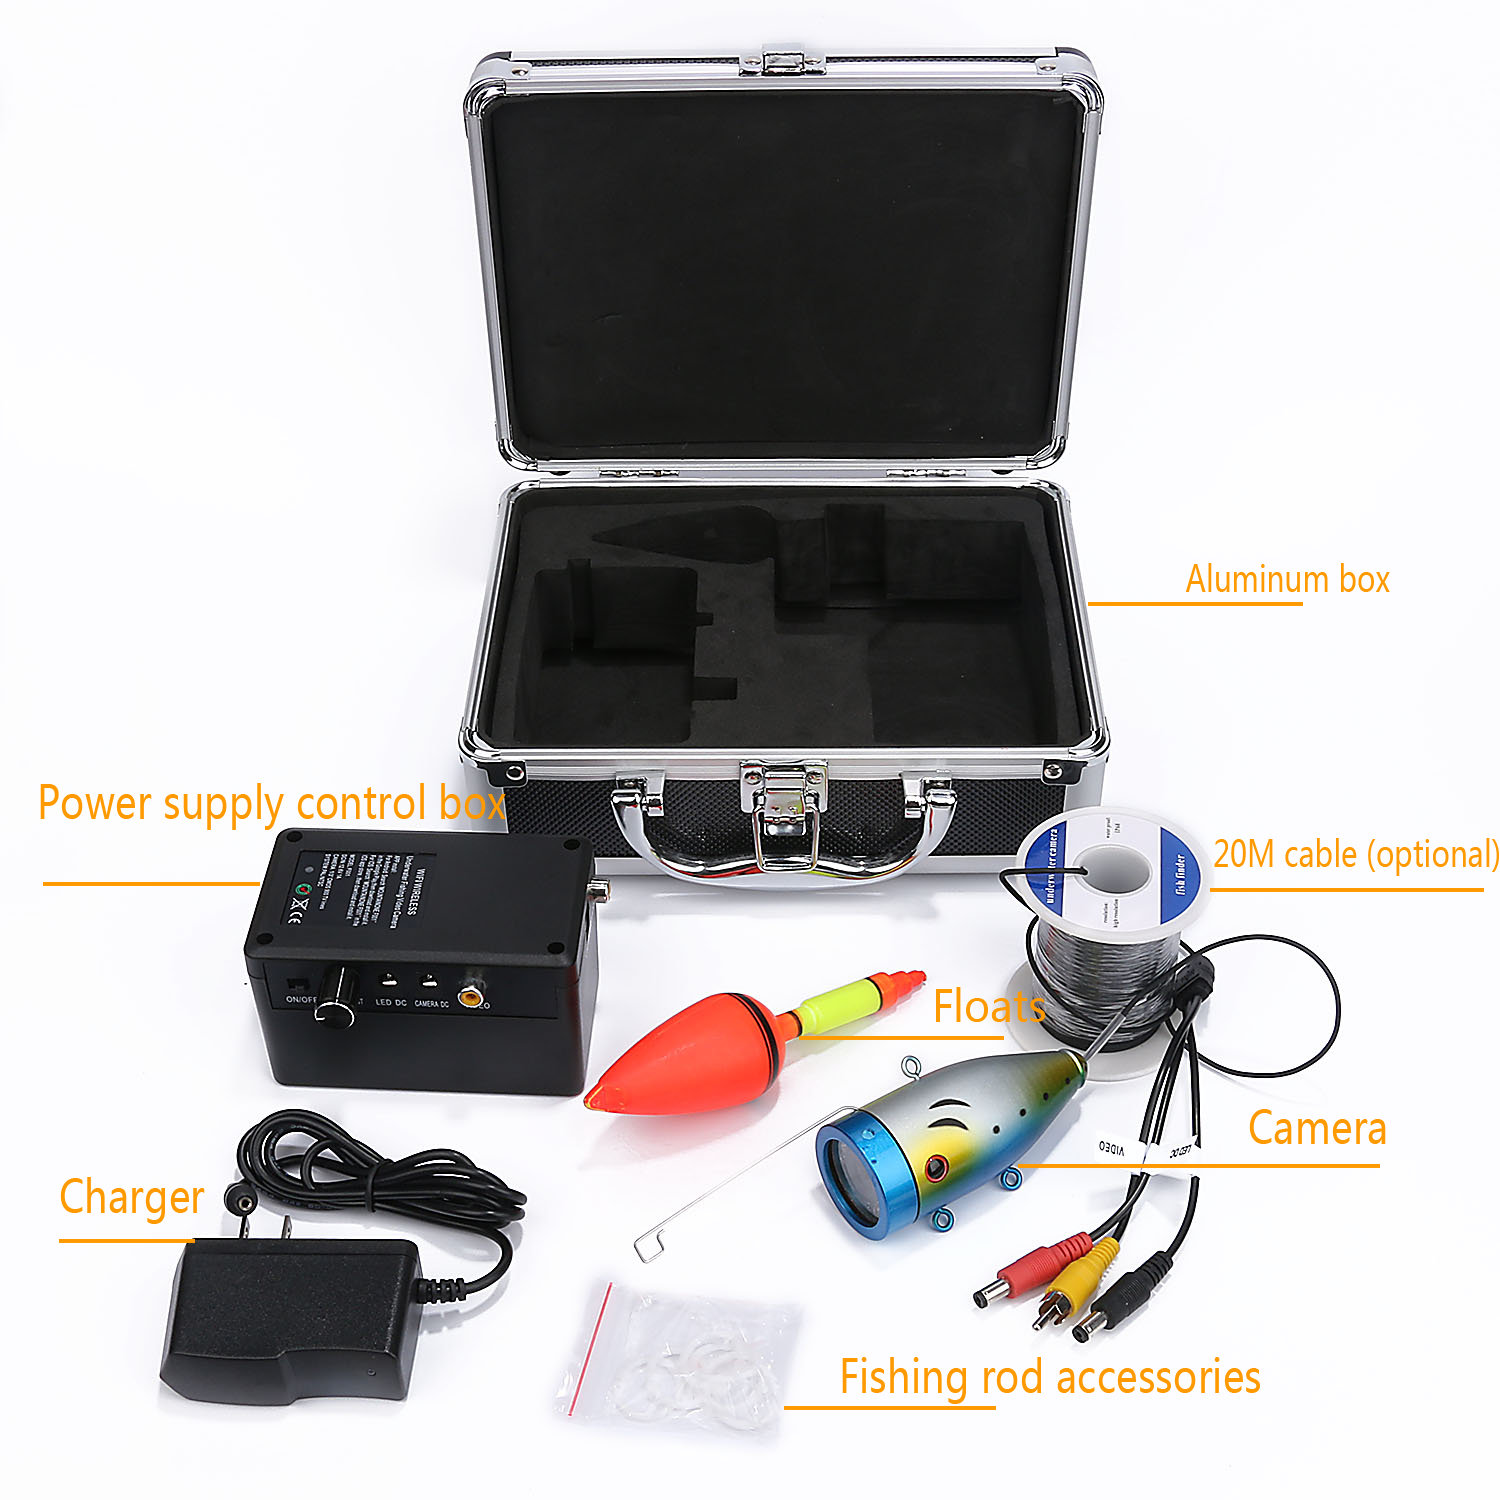 images/wholesale-electronics-2019/Wireless-WIFI-visible-fishing-device-30-meters-mobile-phone-to-watch-1000lines-of-high-definition-underwater-fishing-detector-plusbuyer_6.jpg